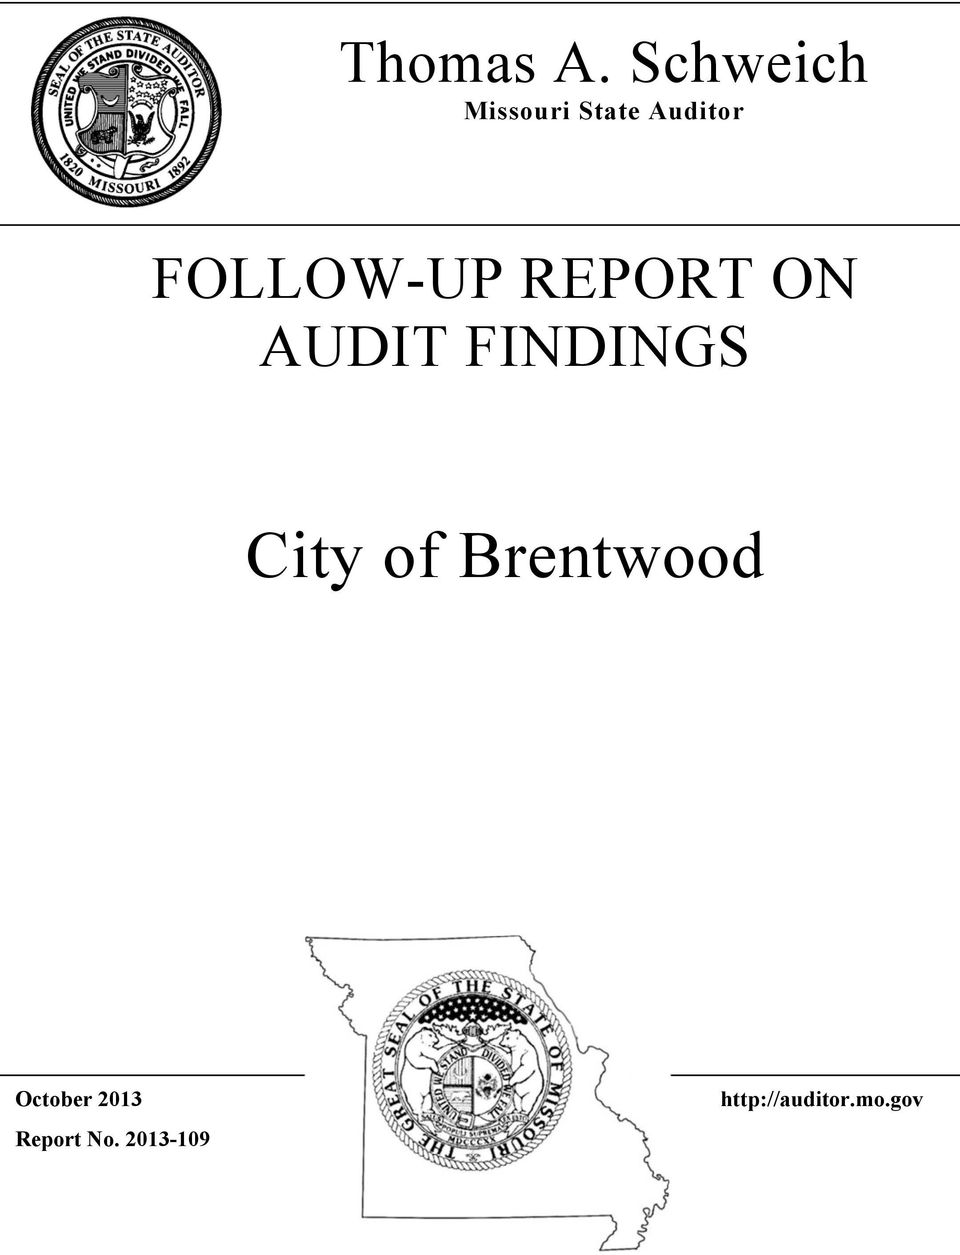 FOLLOW-UP REPORT ON AUDIT FINDINGS